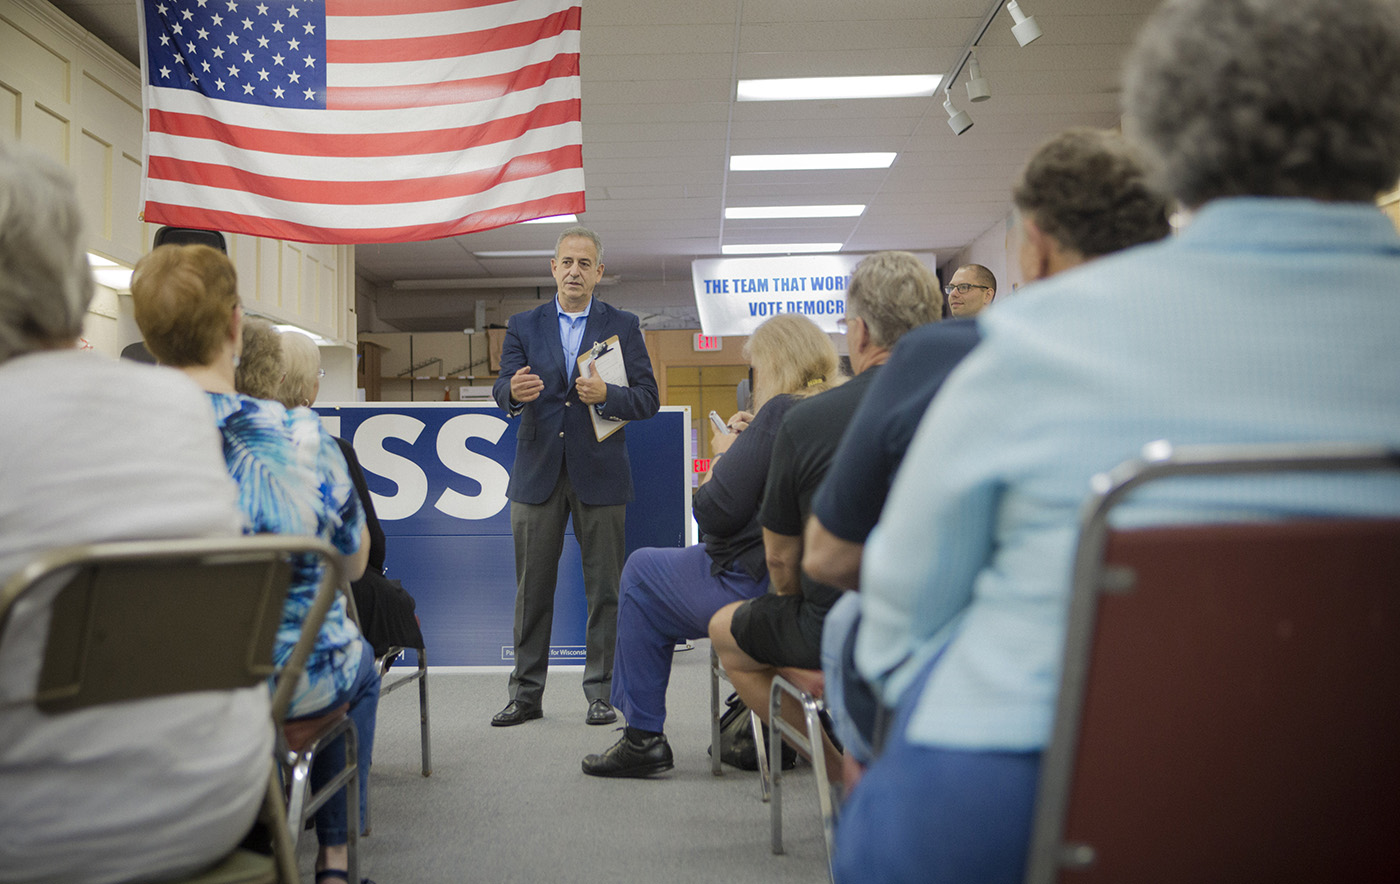 Russ Feingold - GOTV Event for Early Voting